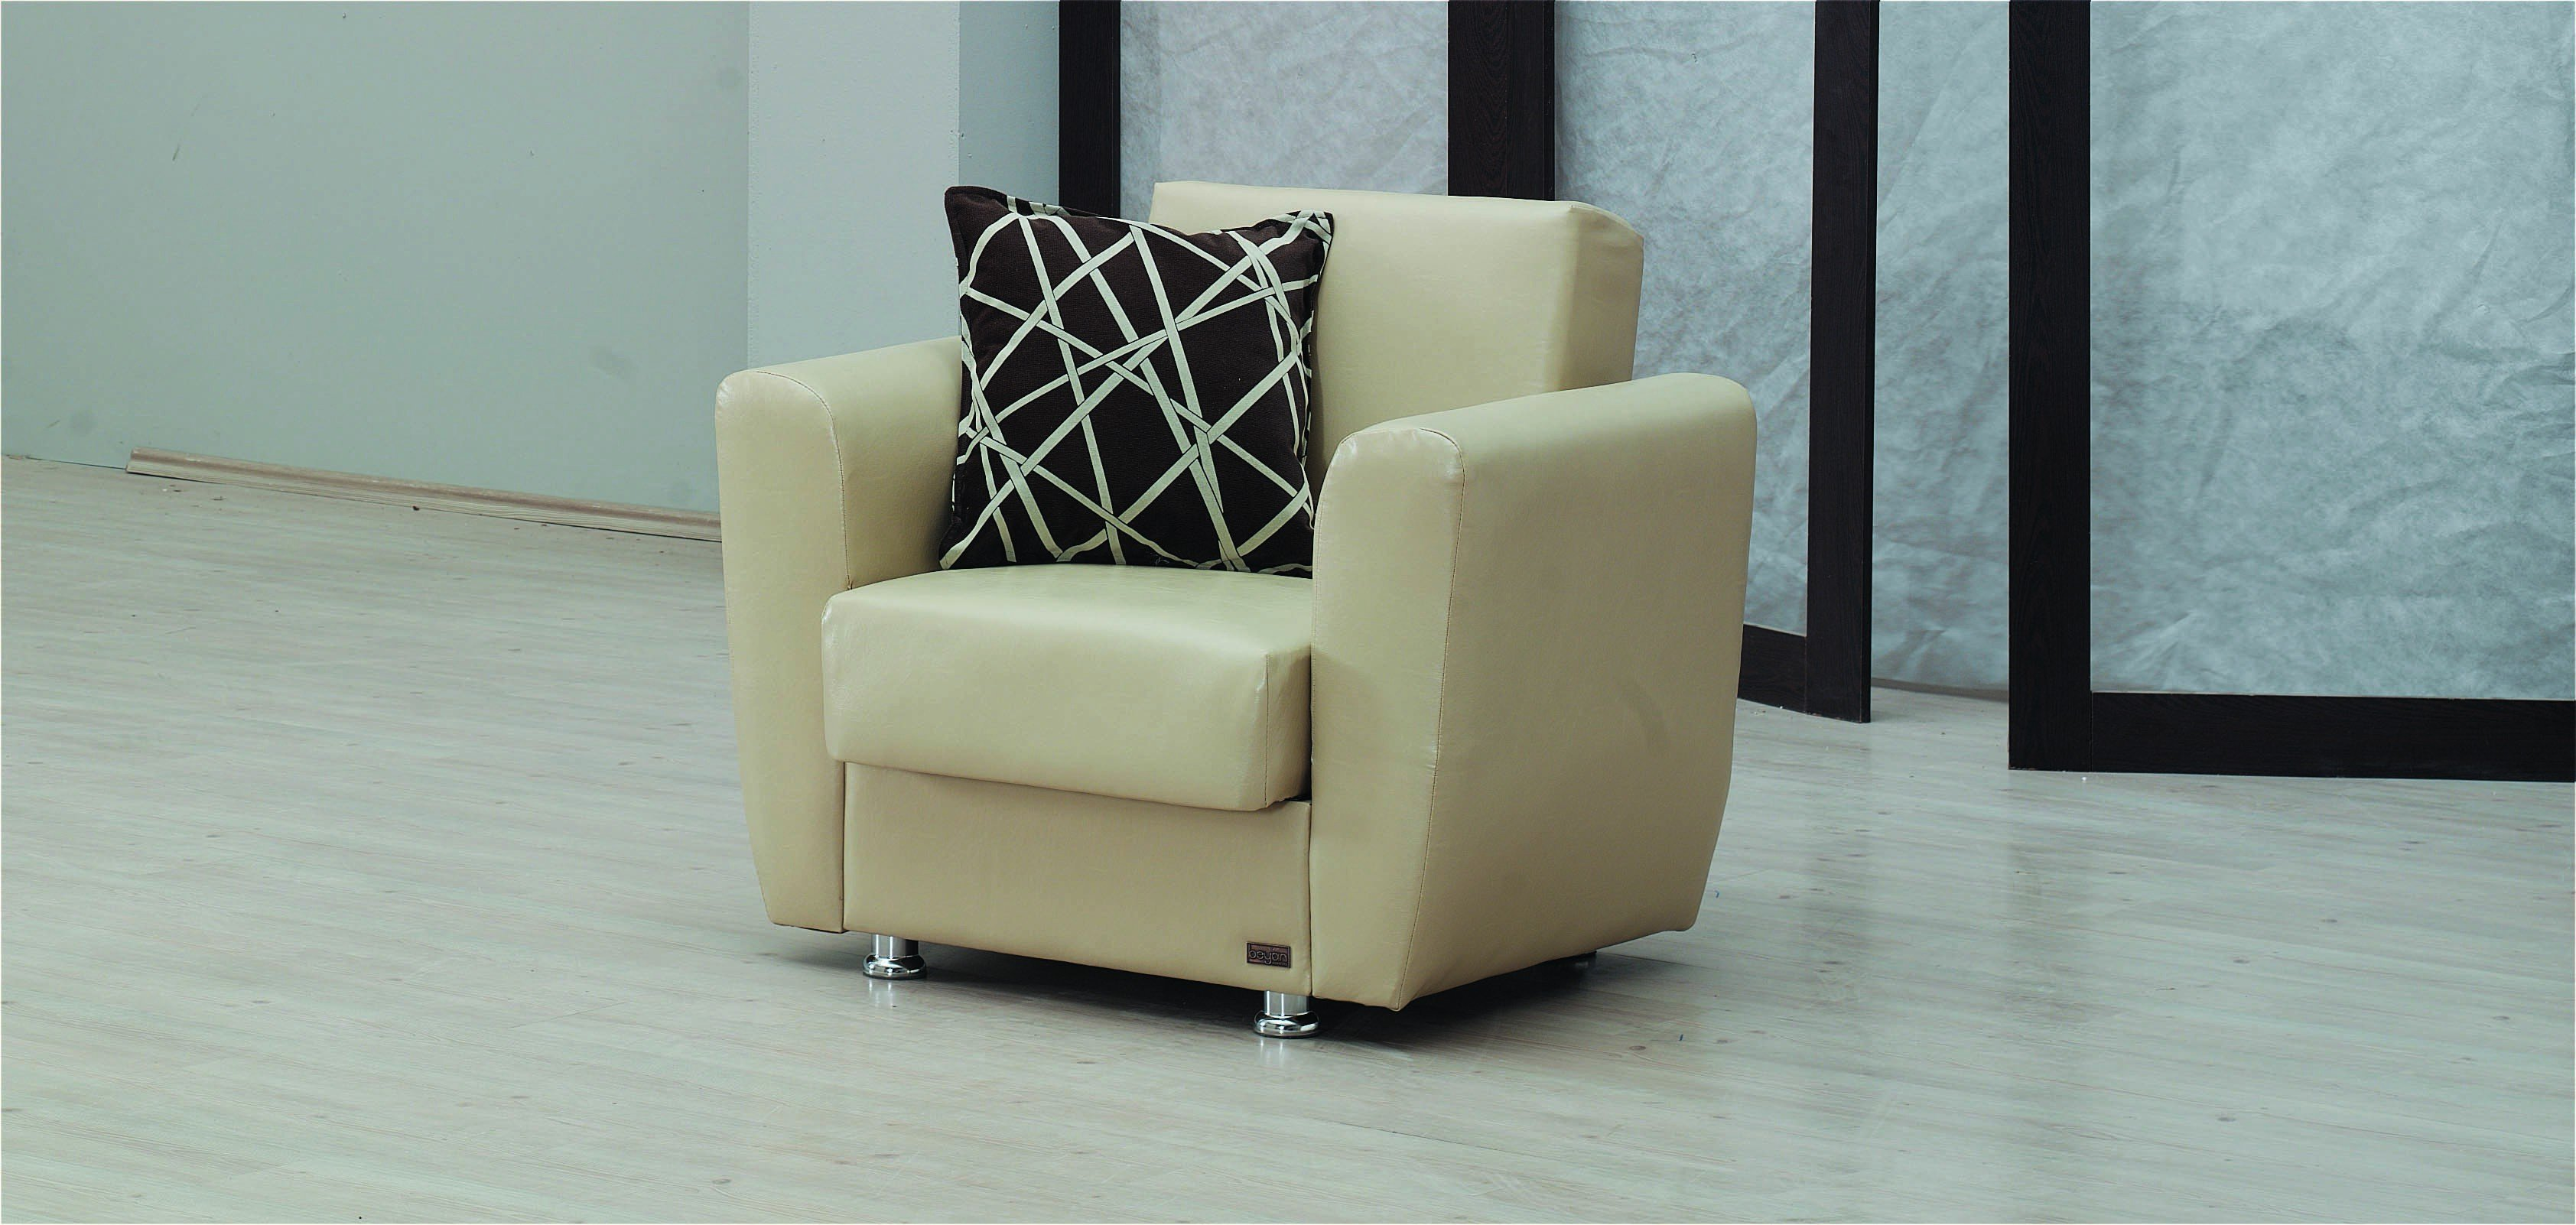 Yonkers cream leather chair by empire furniture usa for Furniture upholstery yonkers ny